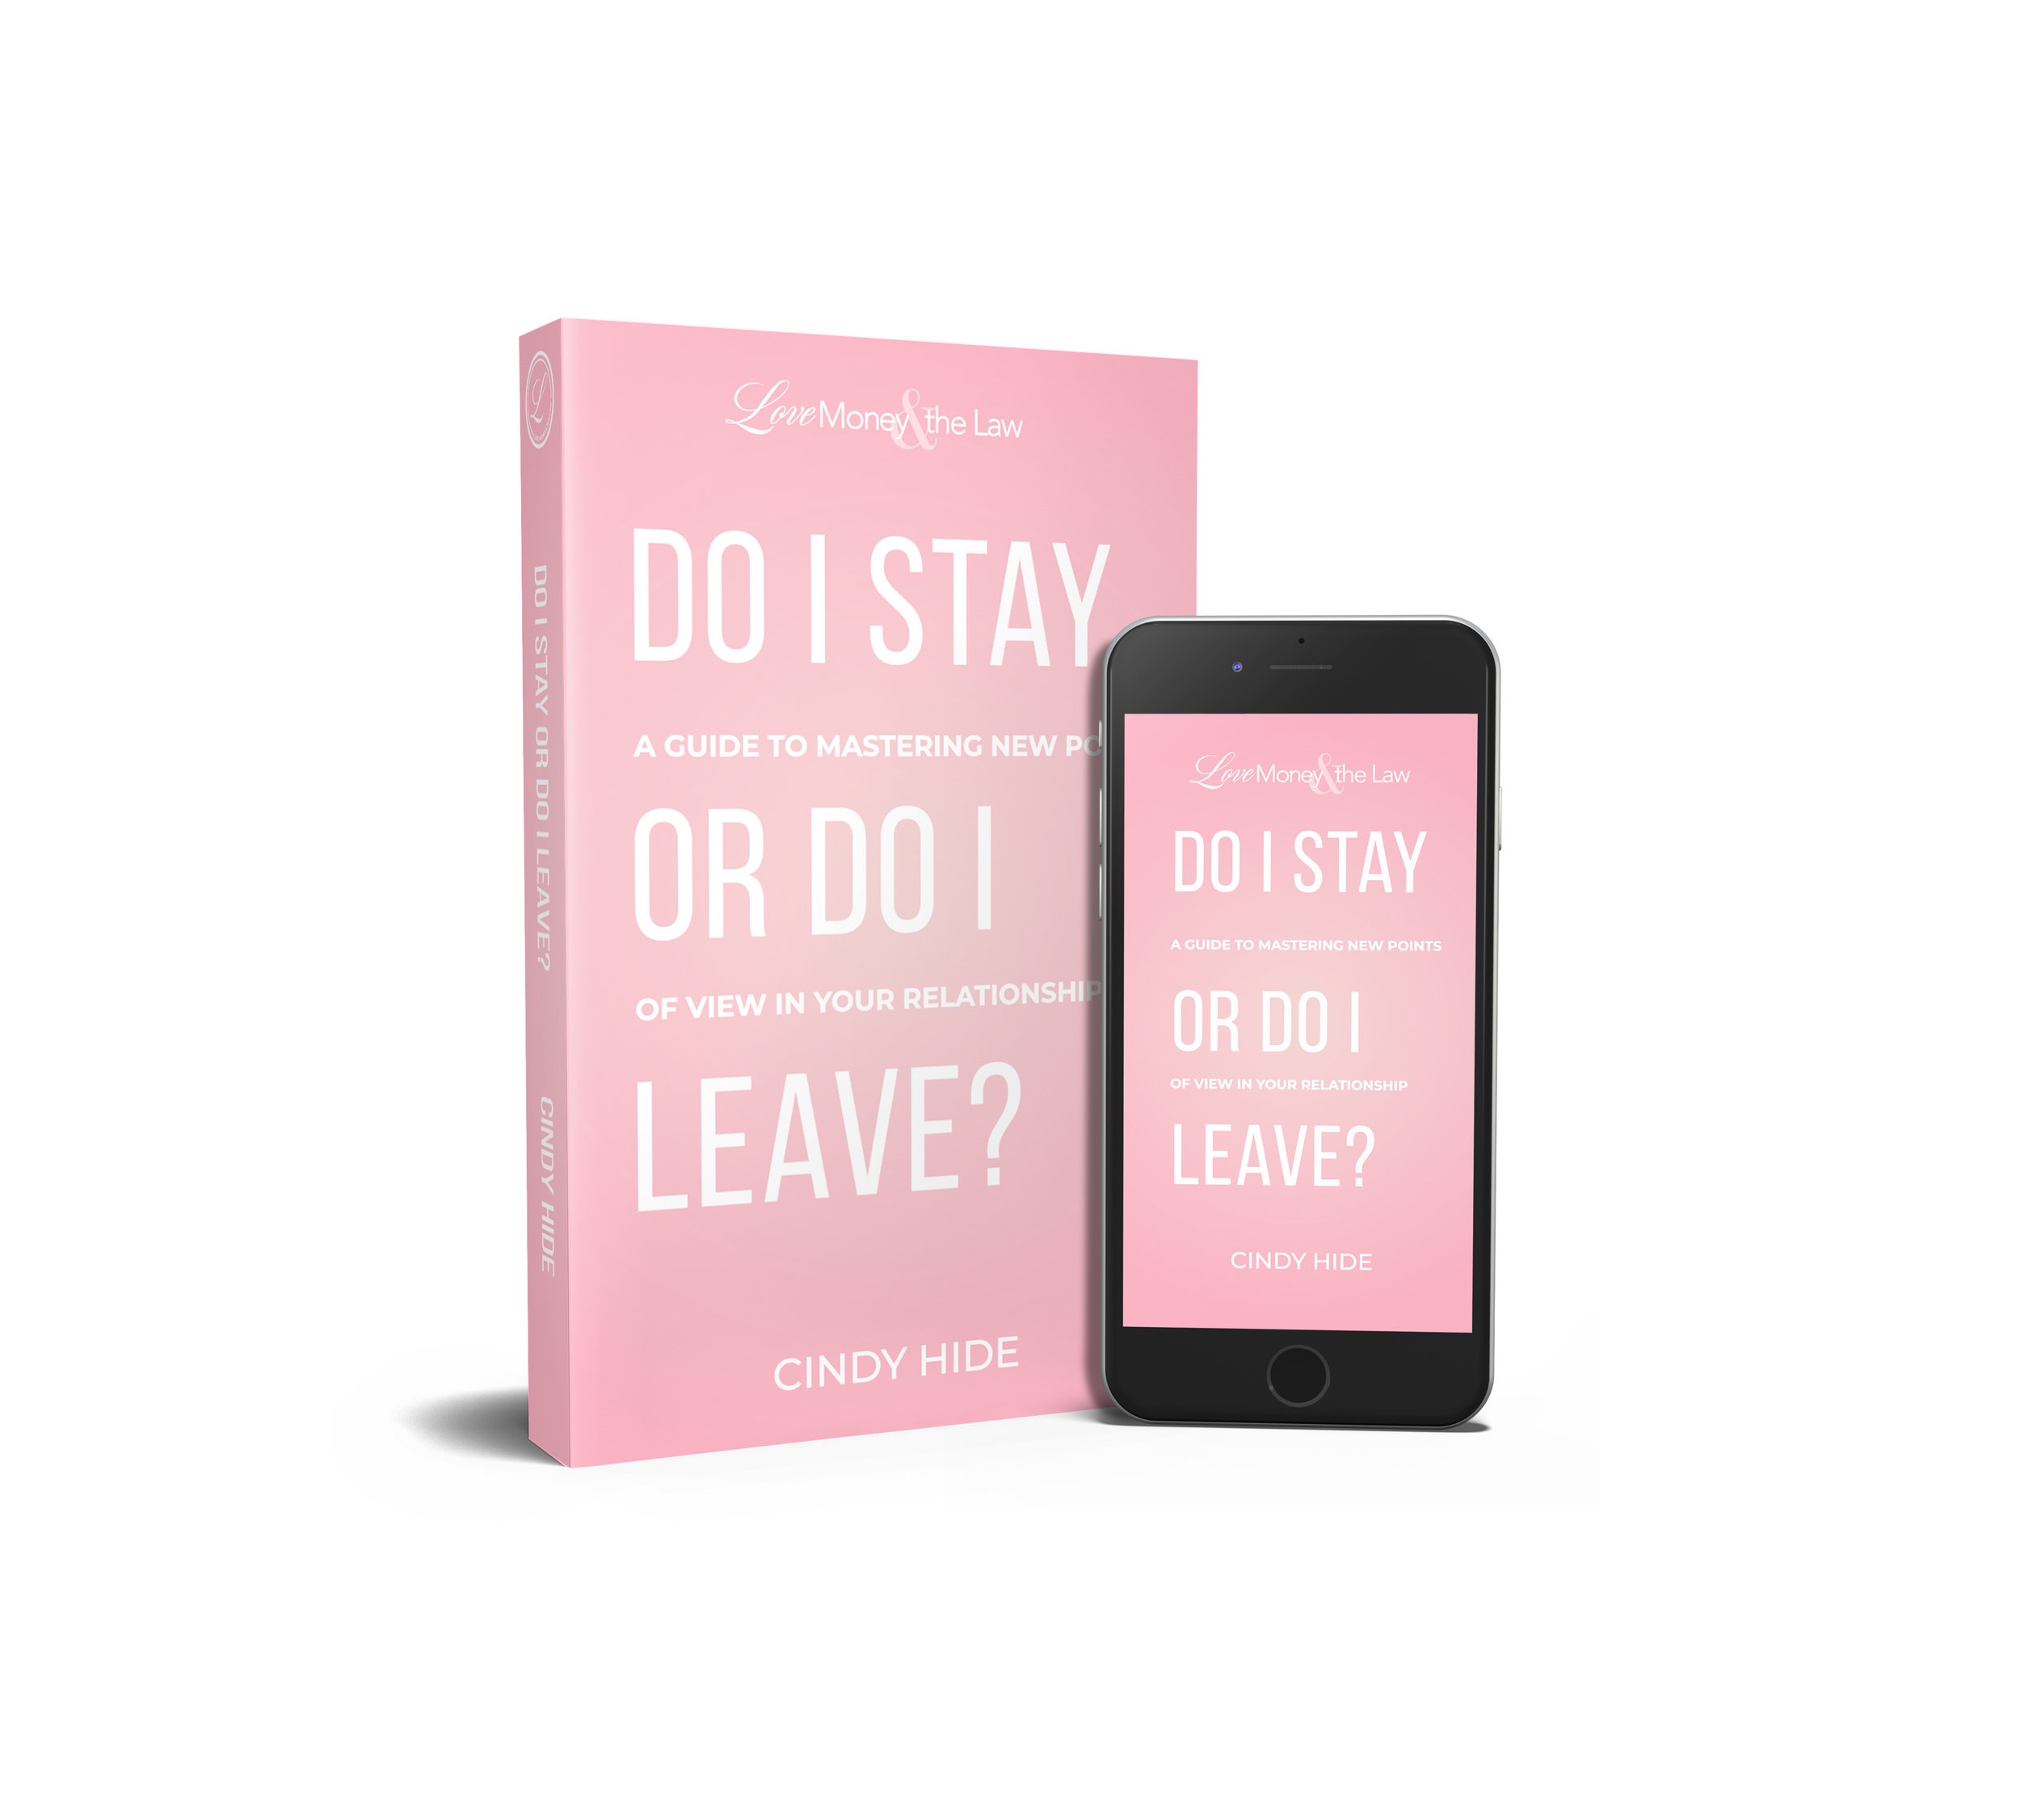 Audiobook for Do I Stay or Do I Leave: A Guide to Mastering New Points of View in Your Relationship.